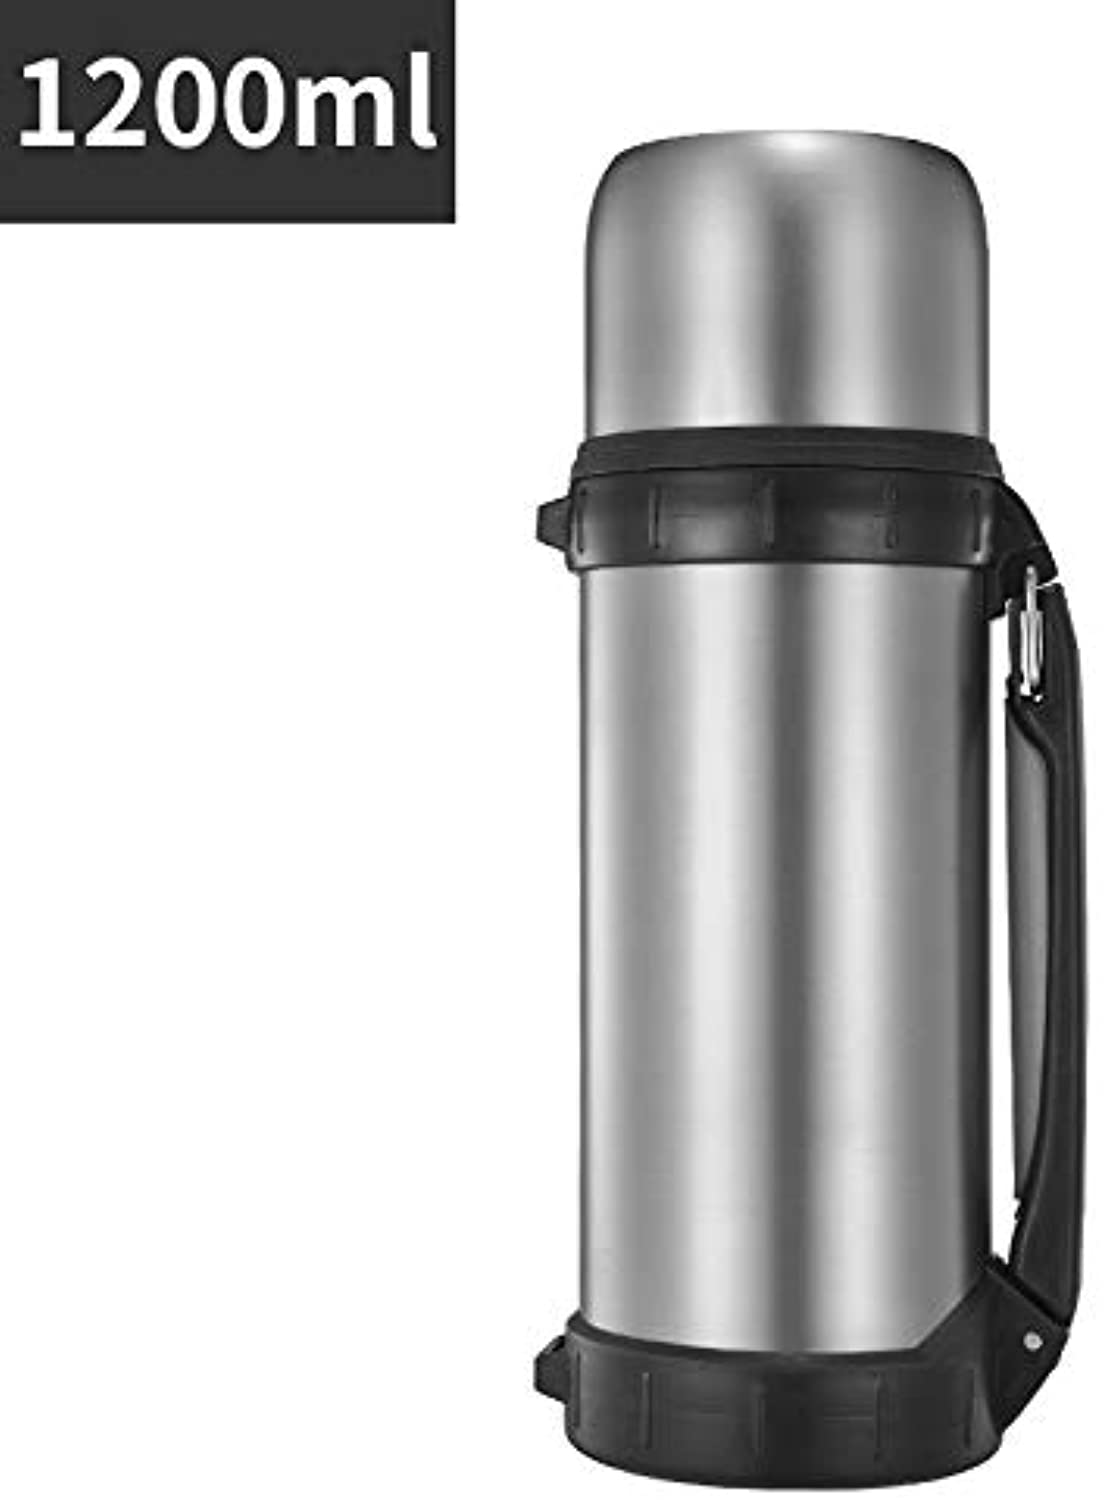 Large Capacity Bottle Stainless Steel Vacuum Insulated Water Bottle Double Wall Sports Drinks Bottle for Hiking Camping Car Travel